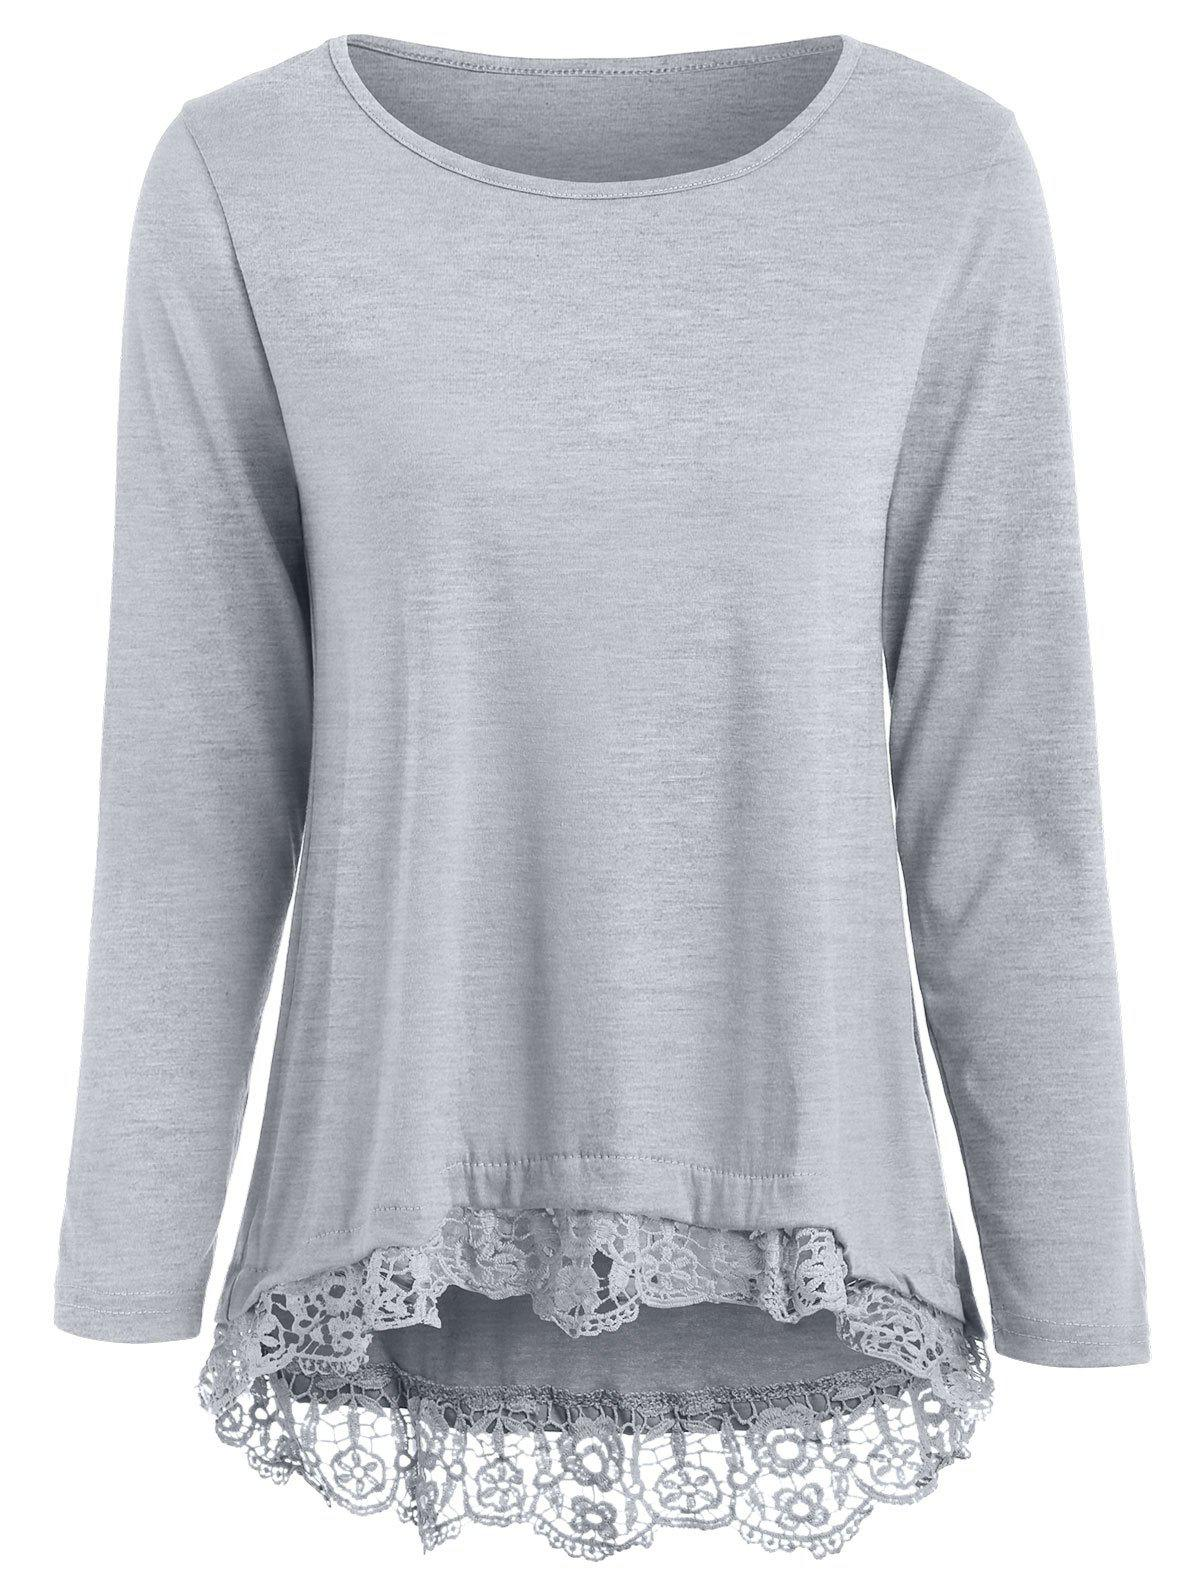 Affordable Stylish Lace Spliced Hem Long Sleeve Gray T-Shirt For Women